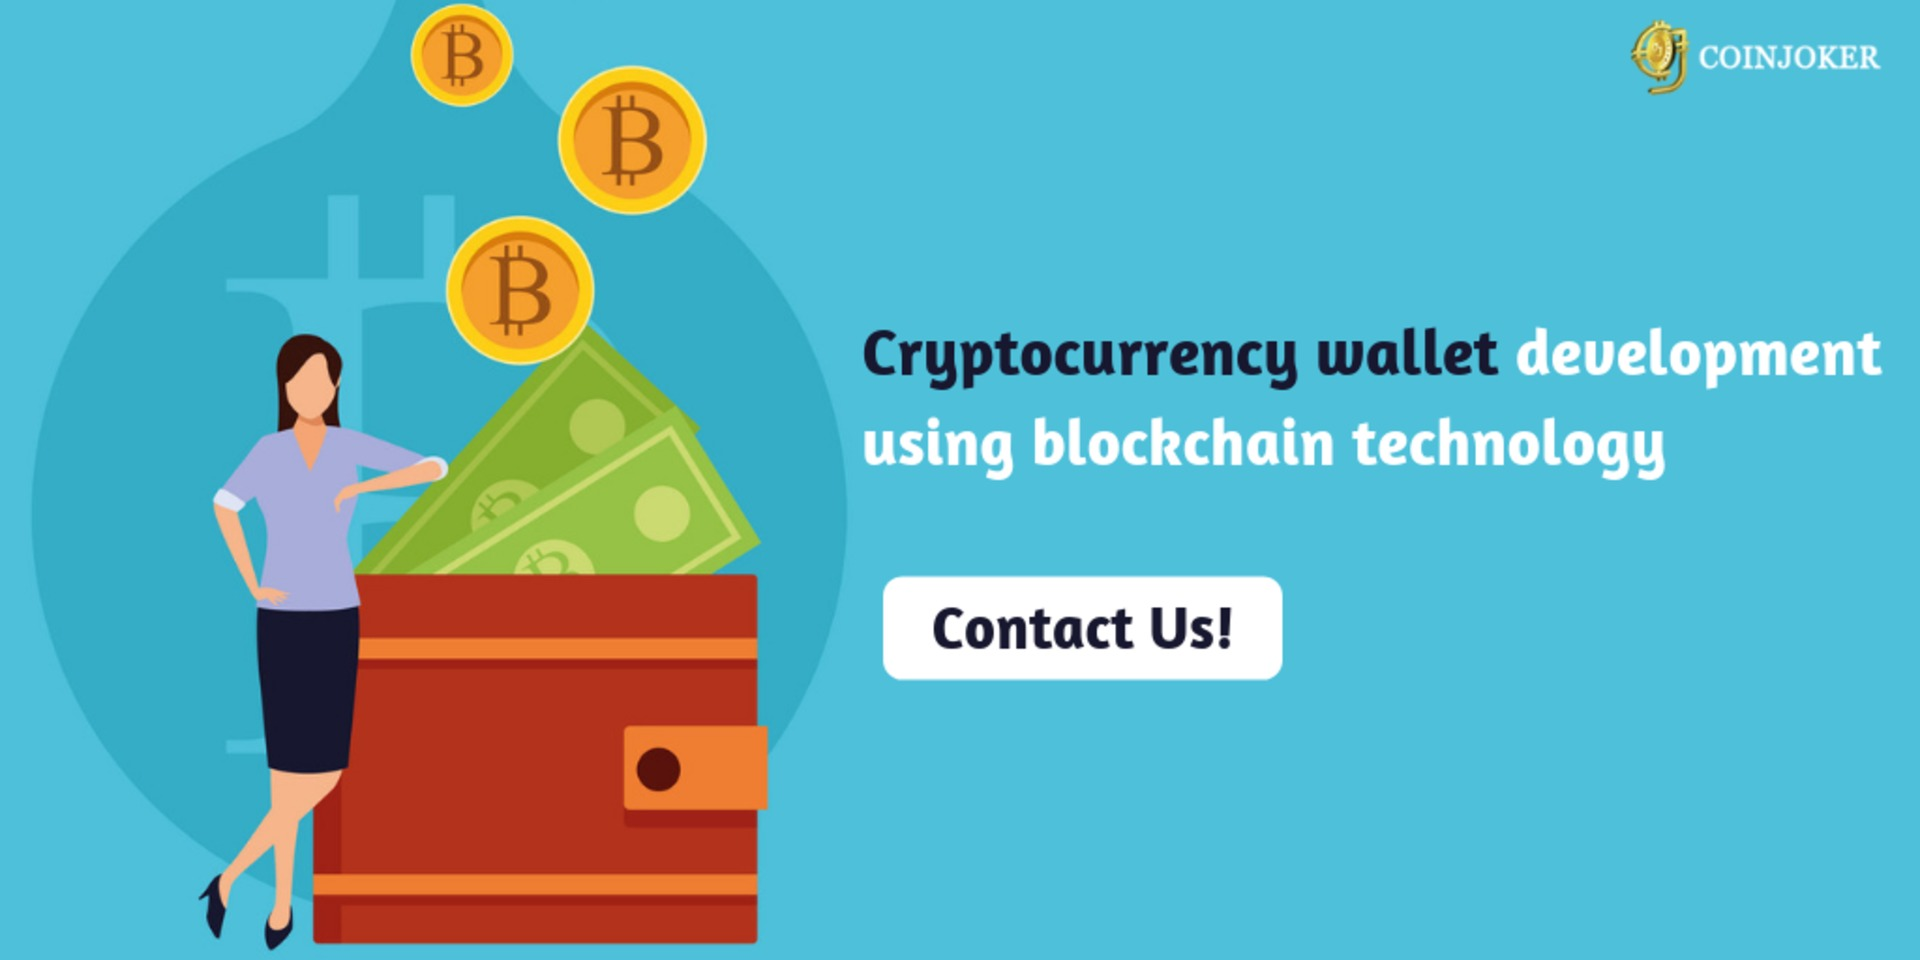 Cryptocurrency wallet development using blockchain technology image